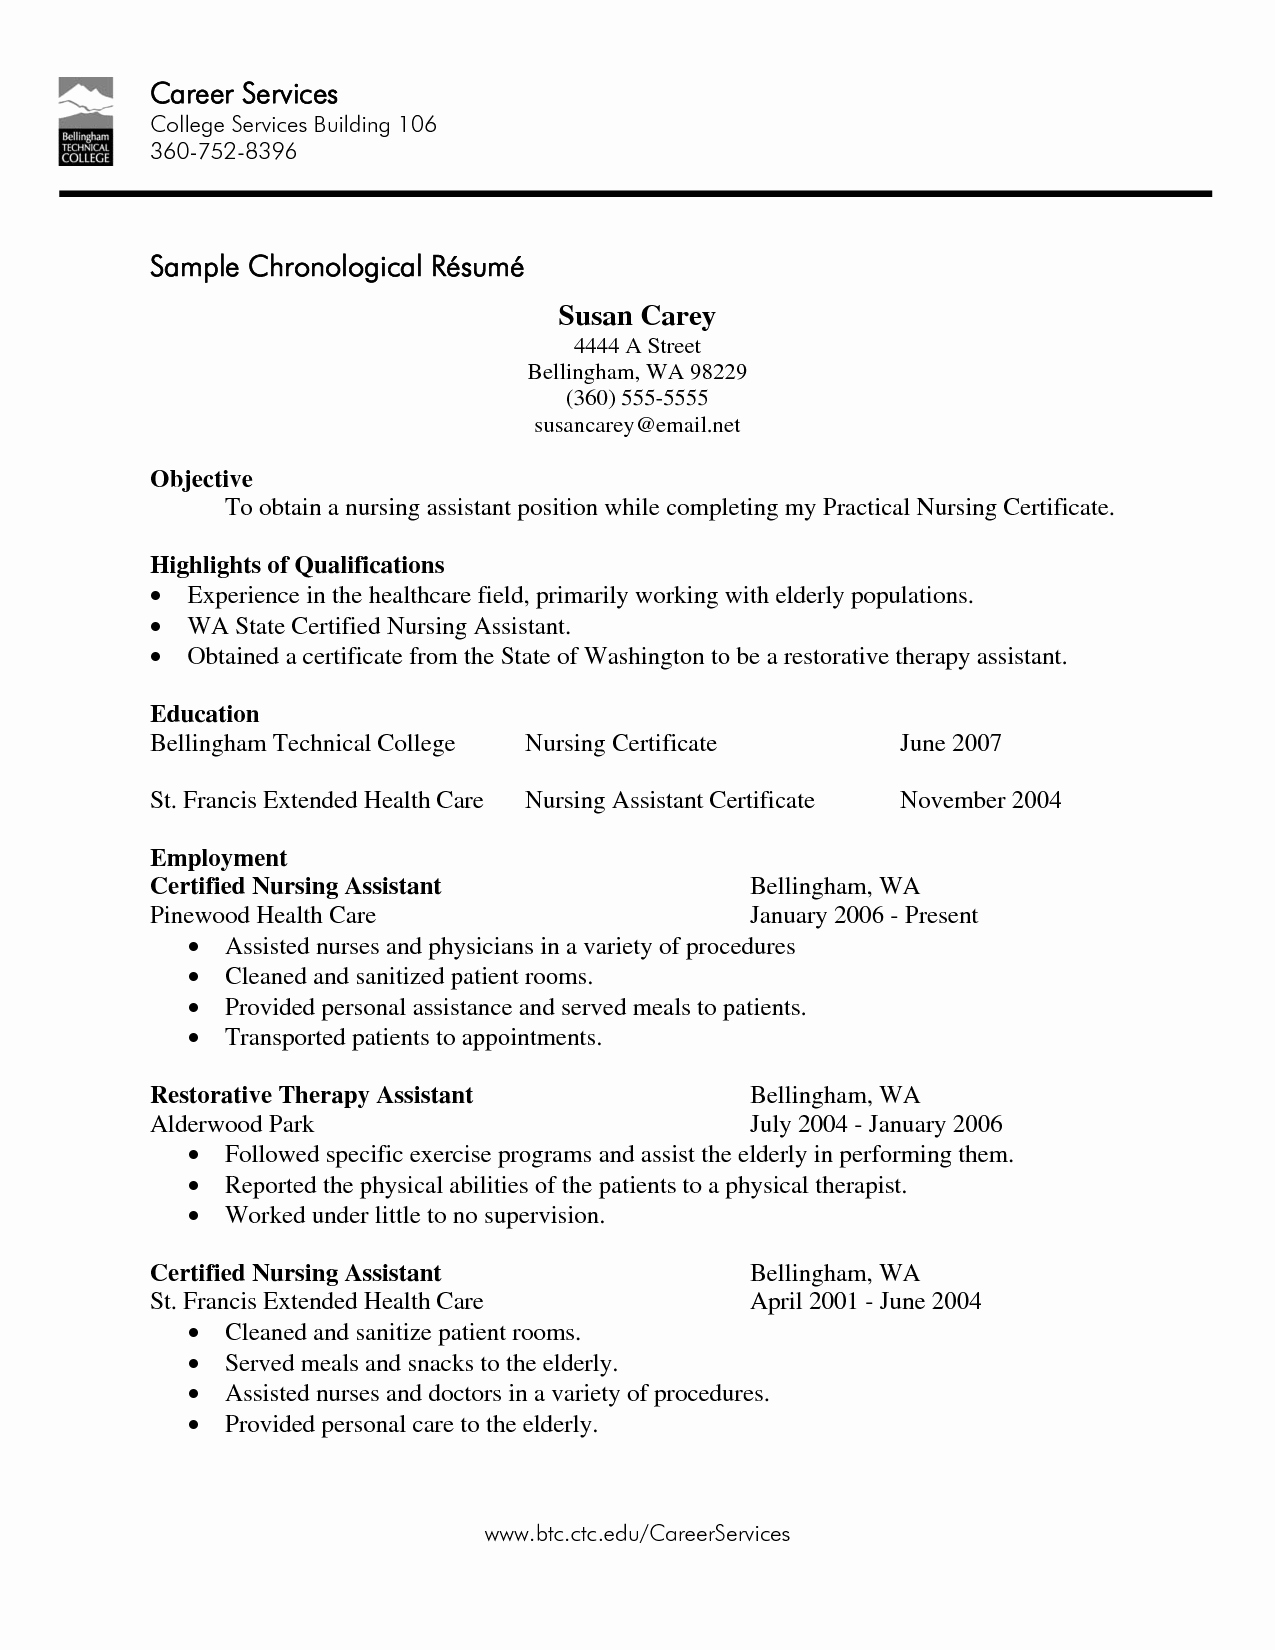 Resume for Medical assistant with No Experience Resume Ideas